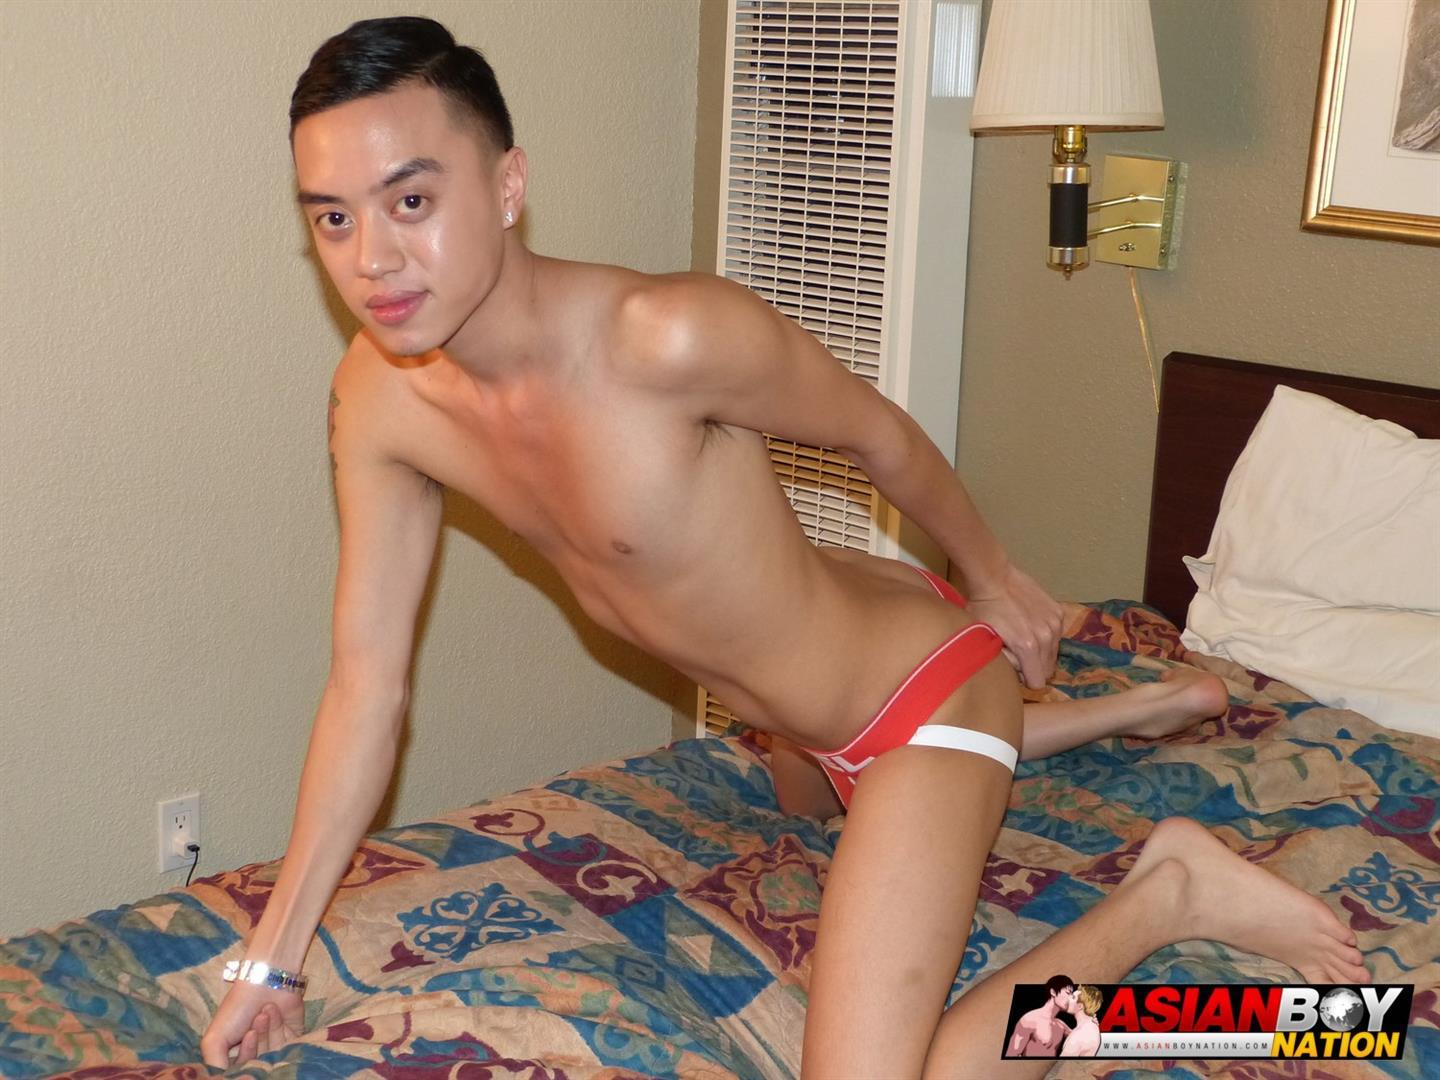 Asian Boy Nation Dax Masters and Coda Filthy Red Head Ginger Fucking An Asian Bottom Amateur Gay Porn 12 Asian Boy Gets Fucked By His Ginger Boyfriends Thick Cock